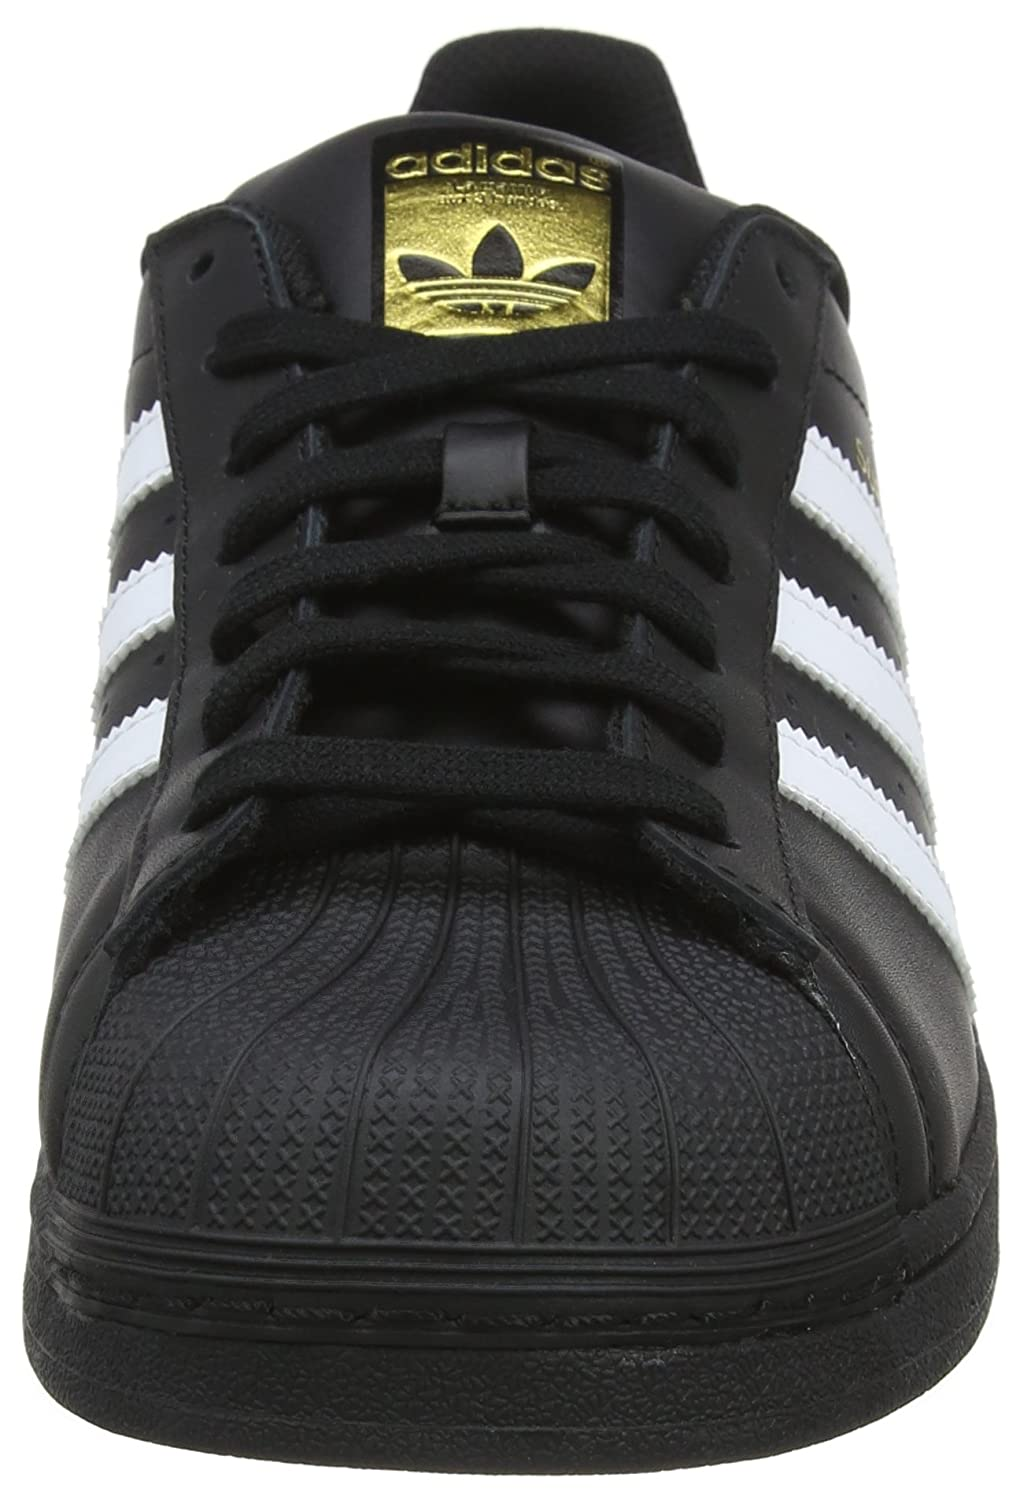 Adidas Originals  Unisex Superstar Foundation Scarpe da Ginnastica Unisex  - Adulto 5ba0c3